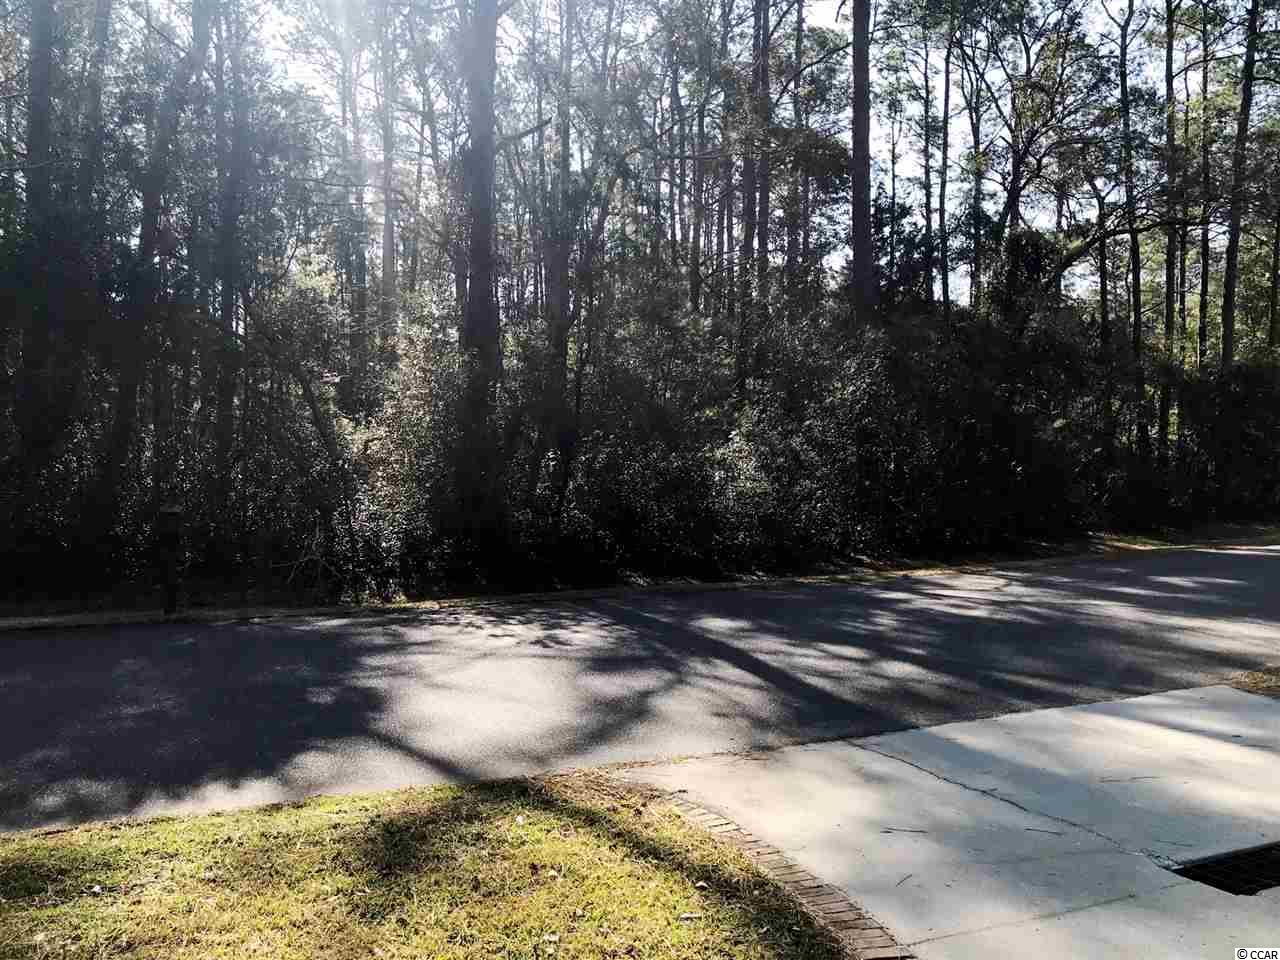 Beautiful Wooded Lot Overlooking Heritage Plantation Fairway.  Large Estate Sized Lot Within the Main Gated Section of Heritage. Amenities Include Clubhouse with Pool, Fitness Area, Card Rooms, Social Events, Playground and four Har-Tru Tennis Courts. Boat Launch Ramp with Direct Access to  the Waccamaw River/ICW. Marina with Dock Master. Measurements Approximate and Not Guaranteed.